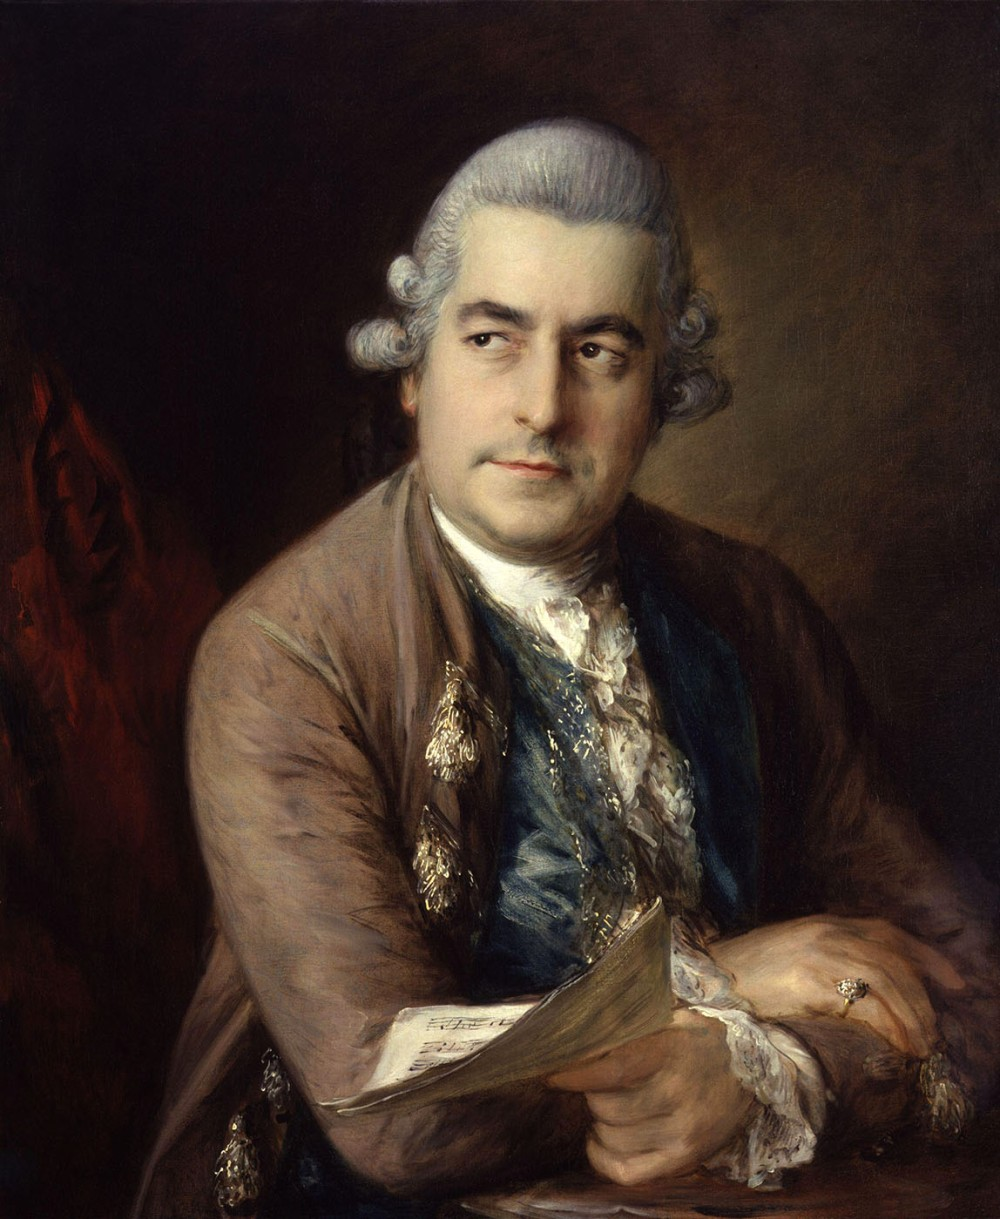 Thomas Gainsborough. Johann Christian Bach. 1776. National Portrait Gallery. Londres.